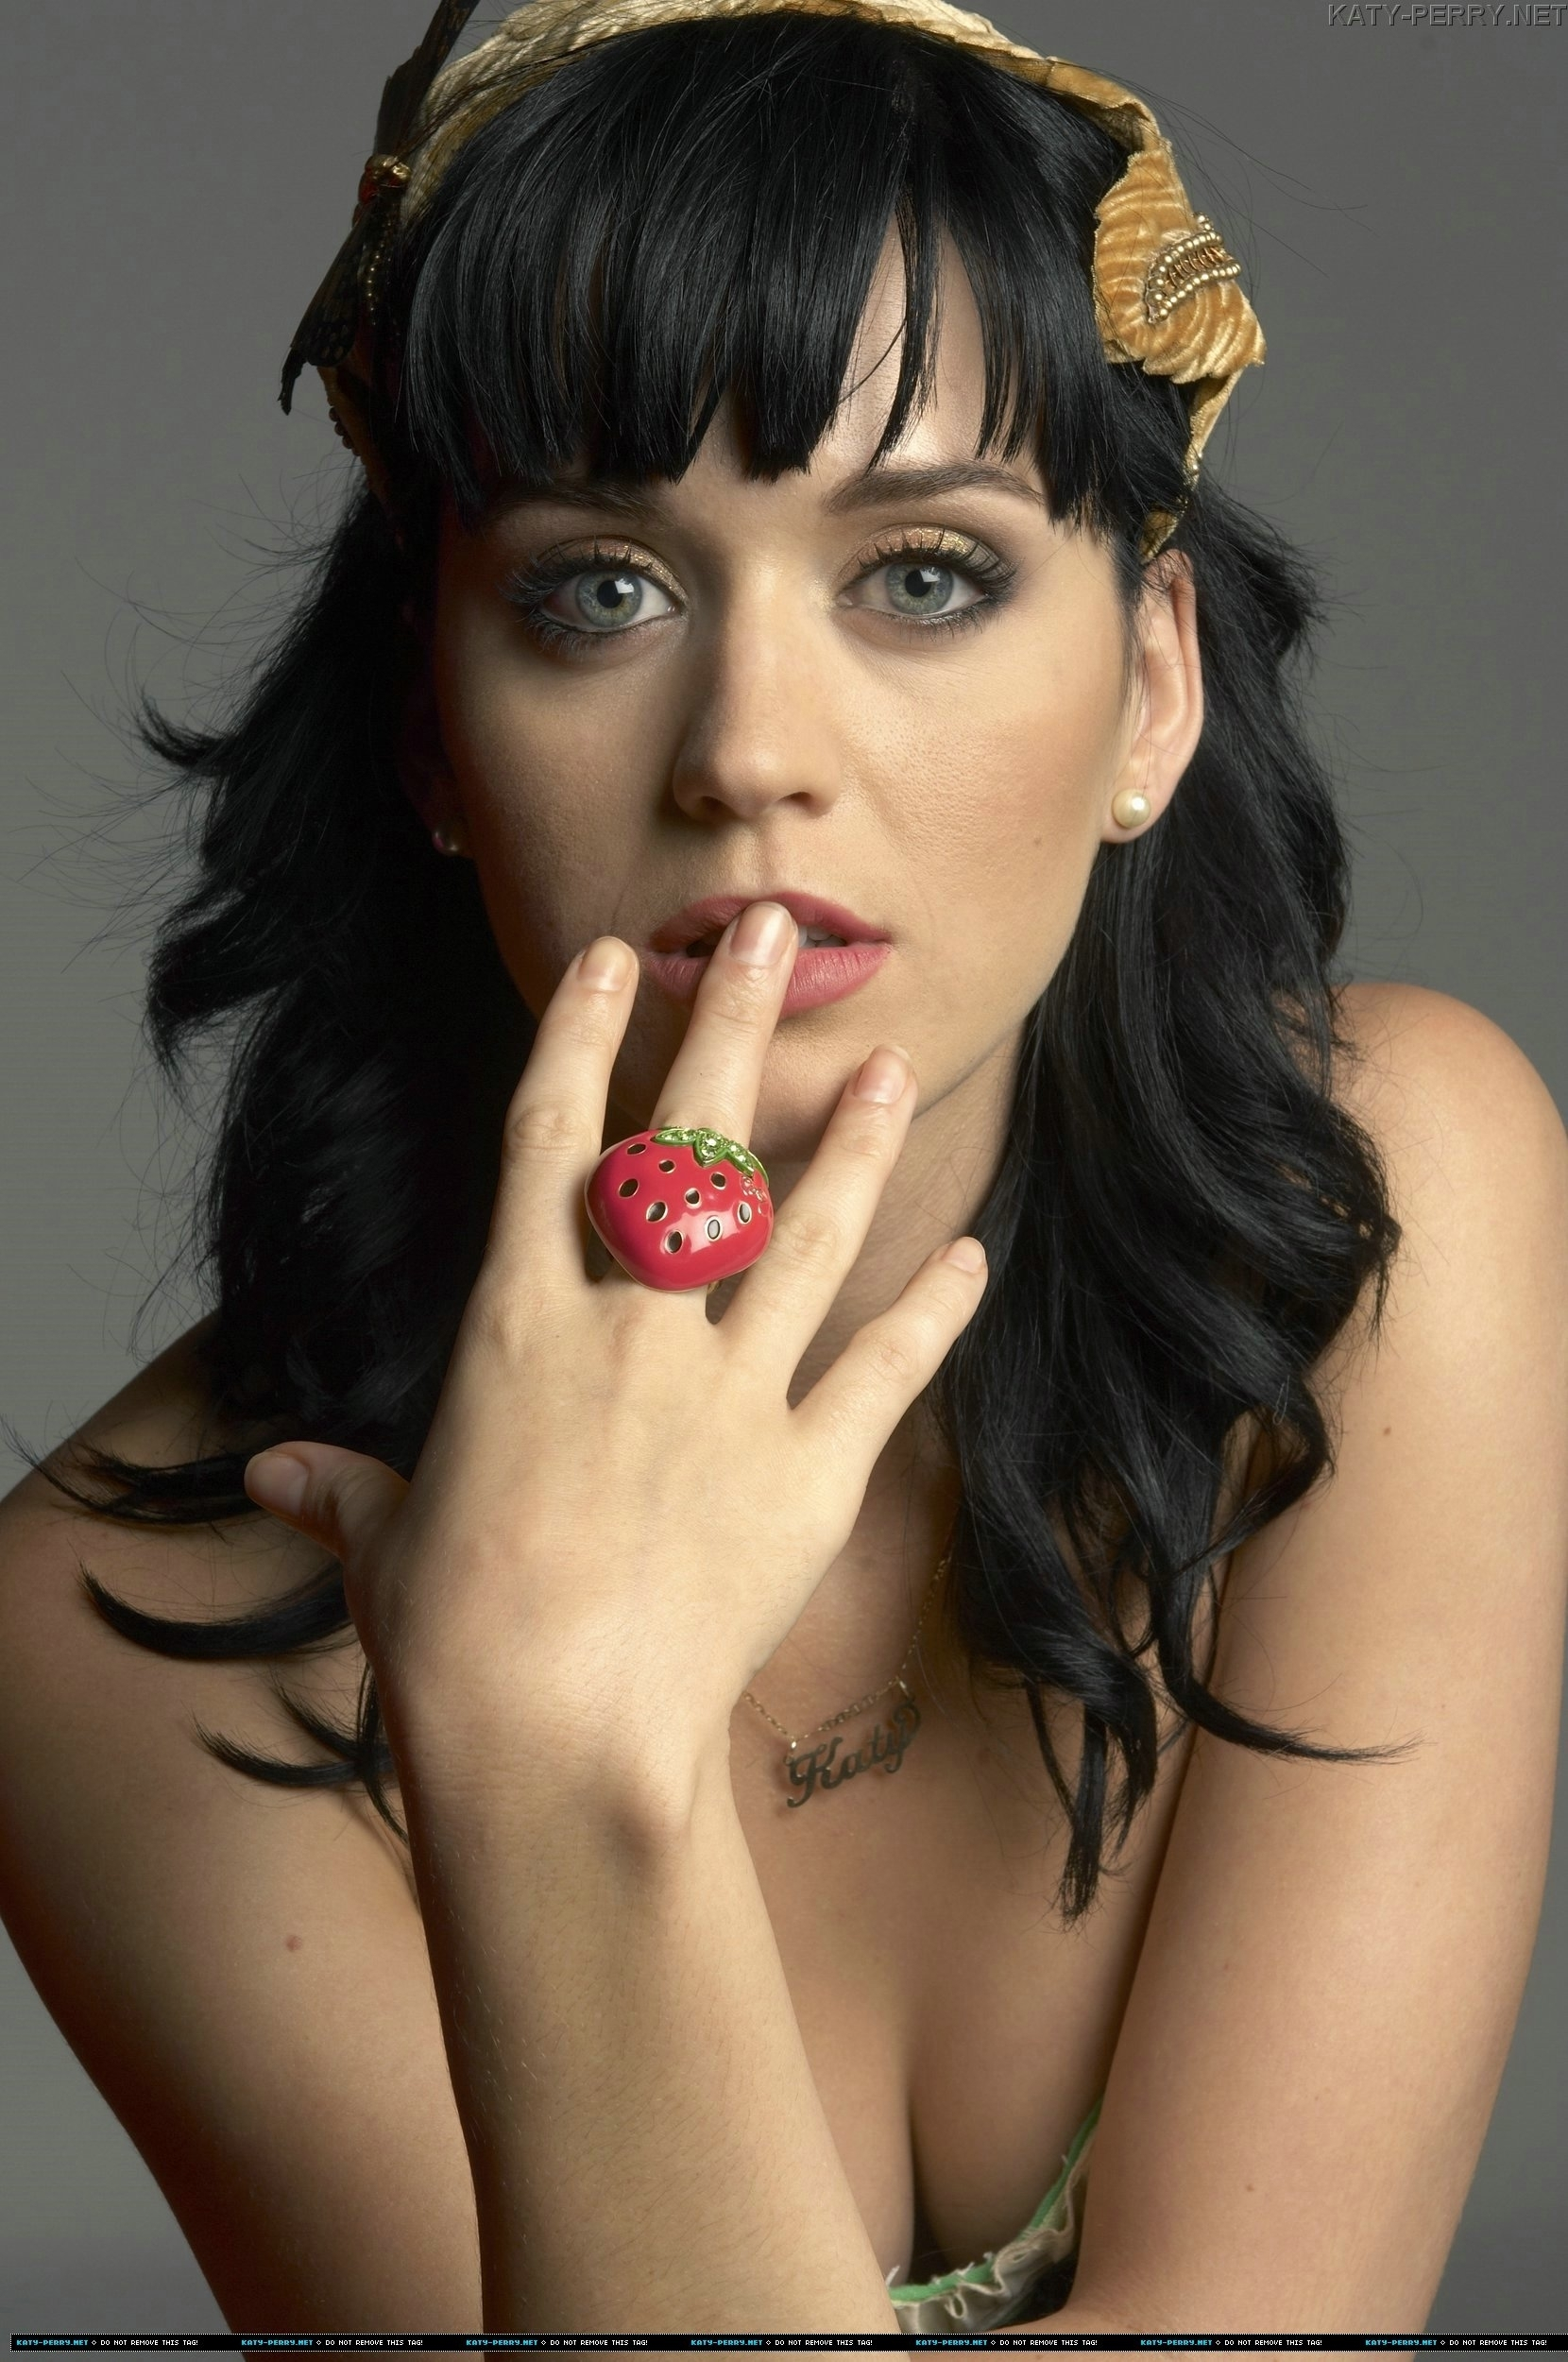 Katy Perry   Katy Perry Photo (6419745)   Fanpop Fanclubs Wallpaper